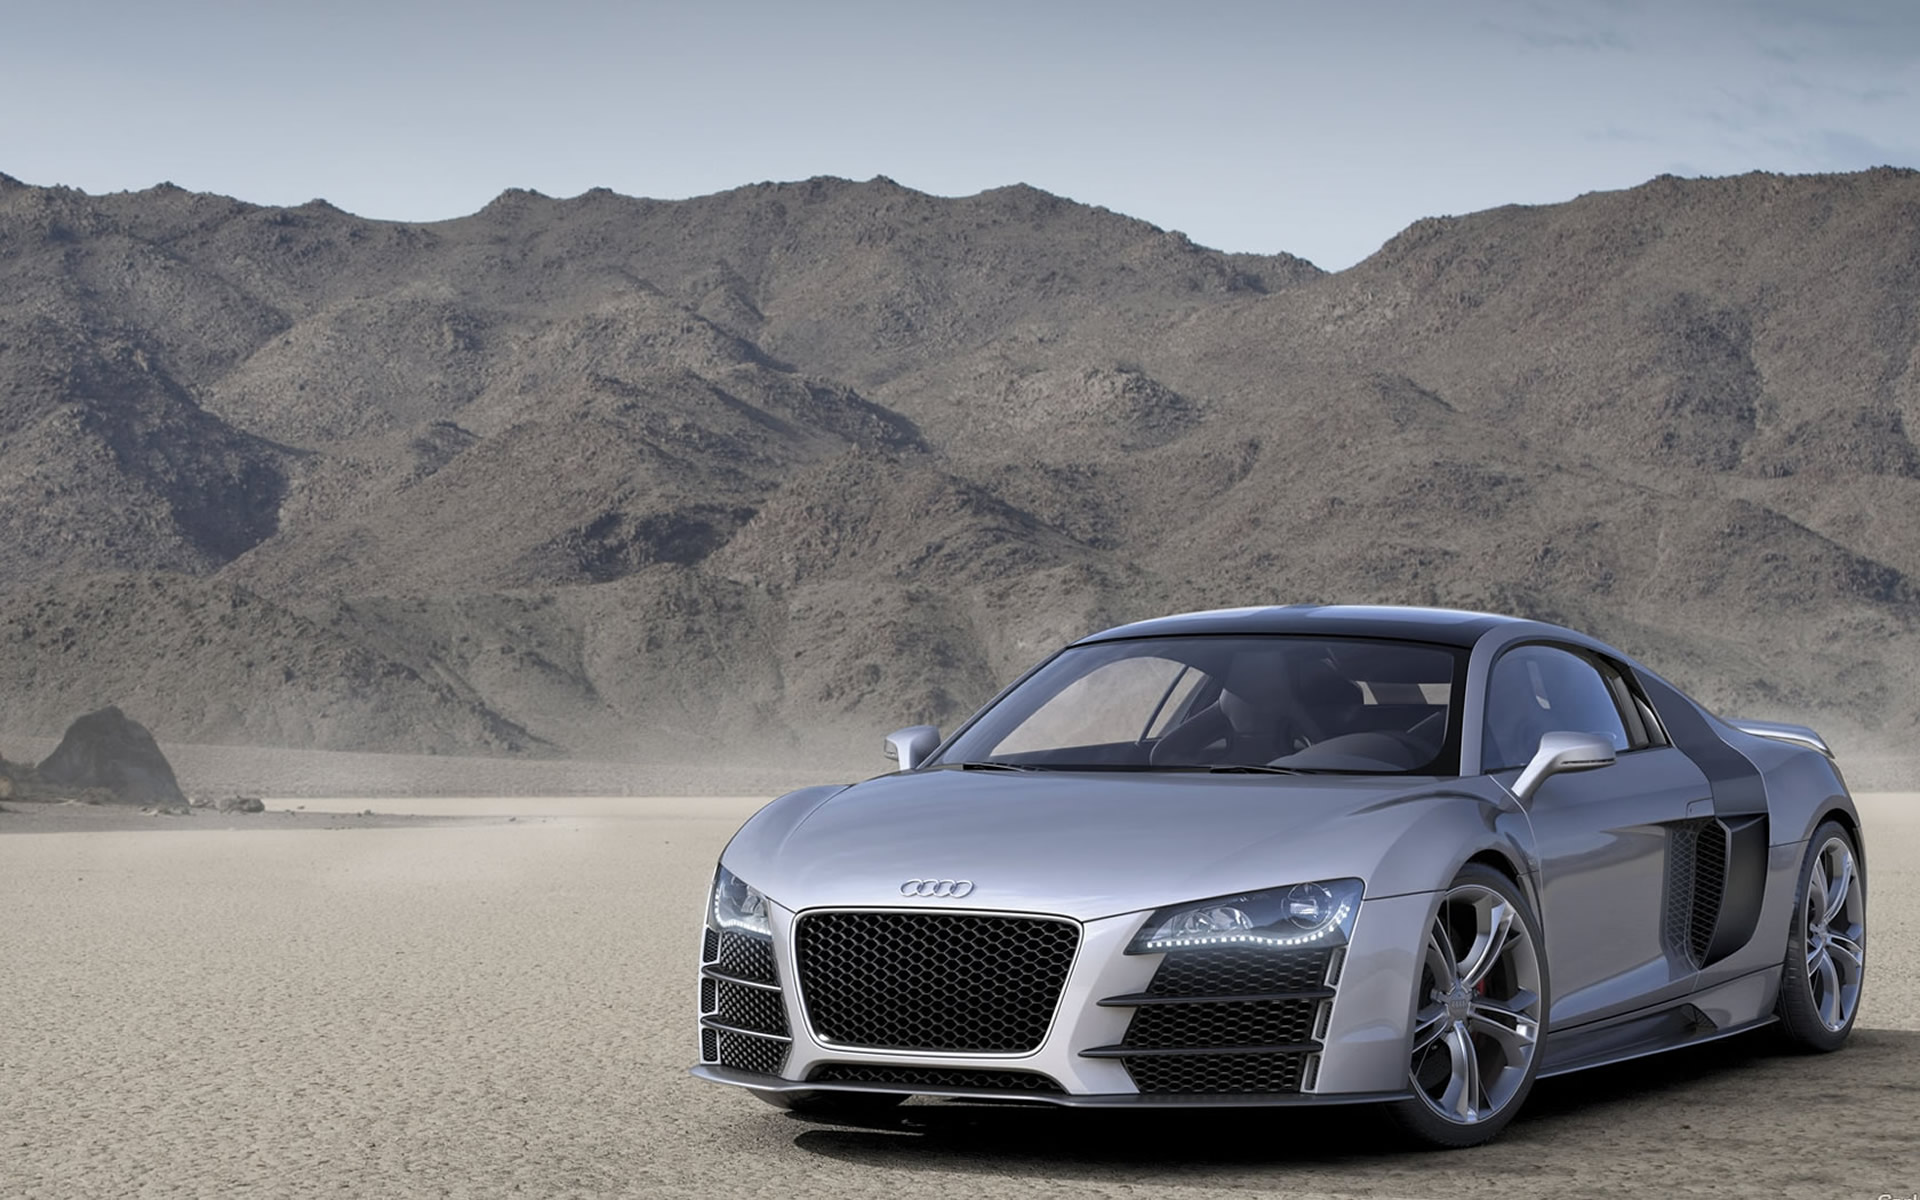 HD wallpaper 2013 Audi Wallpaper High Resolution Wallpaper by 1920x1200